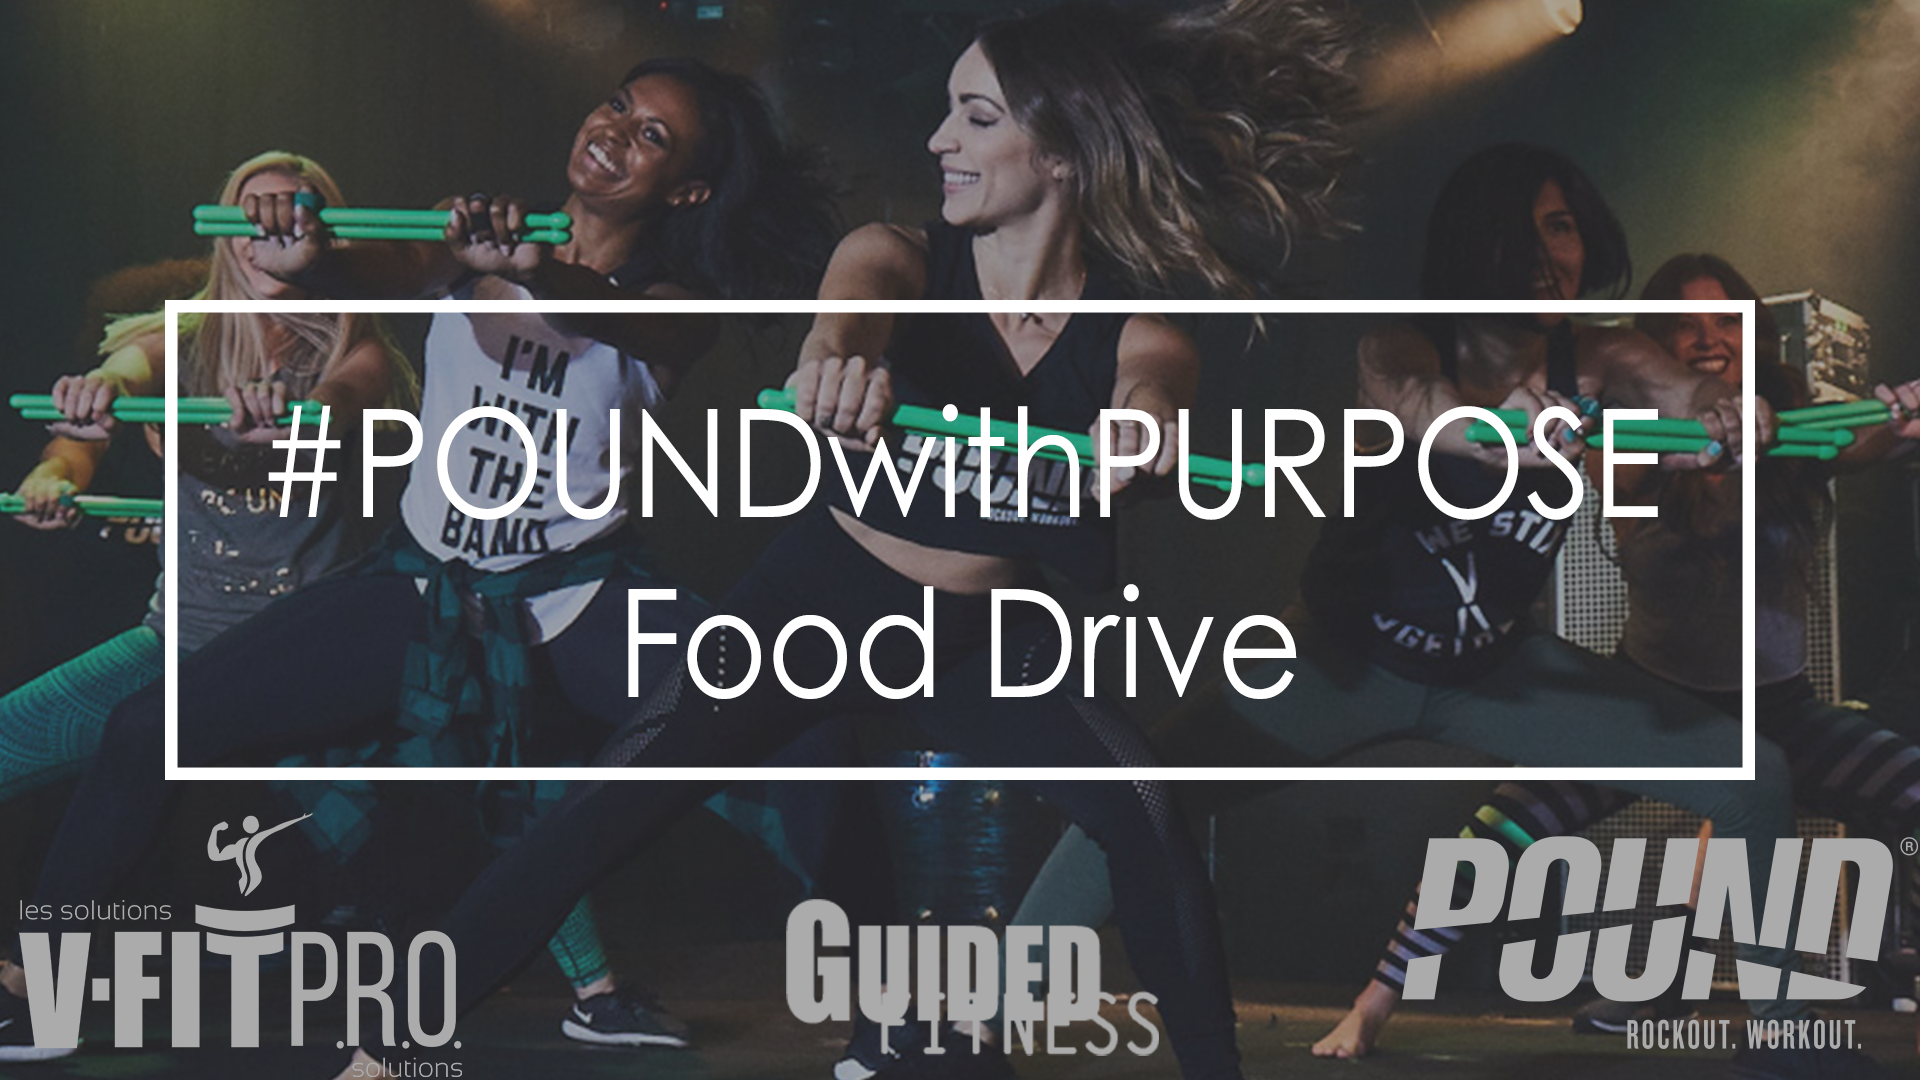 #POUNDwithPURPOSE A Food Drive